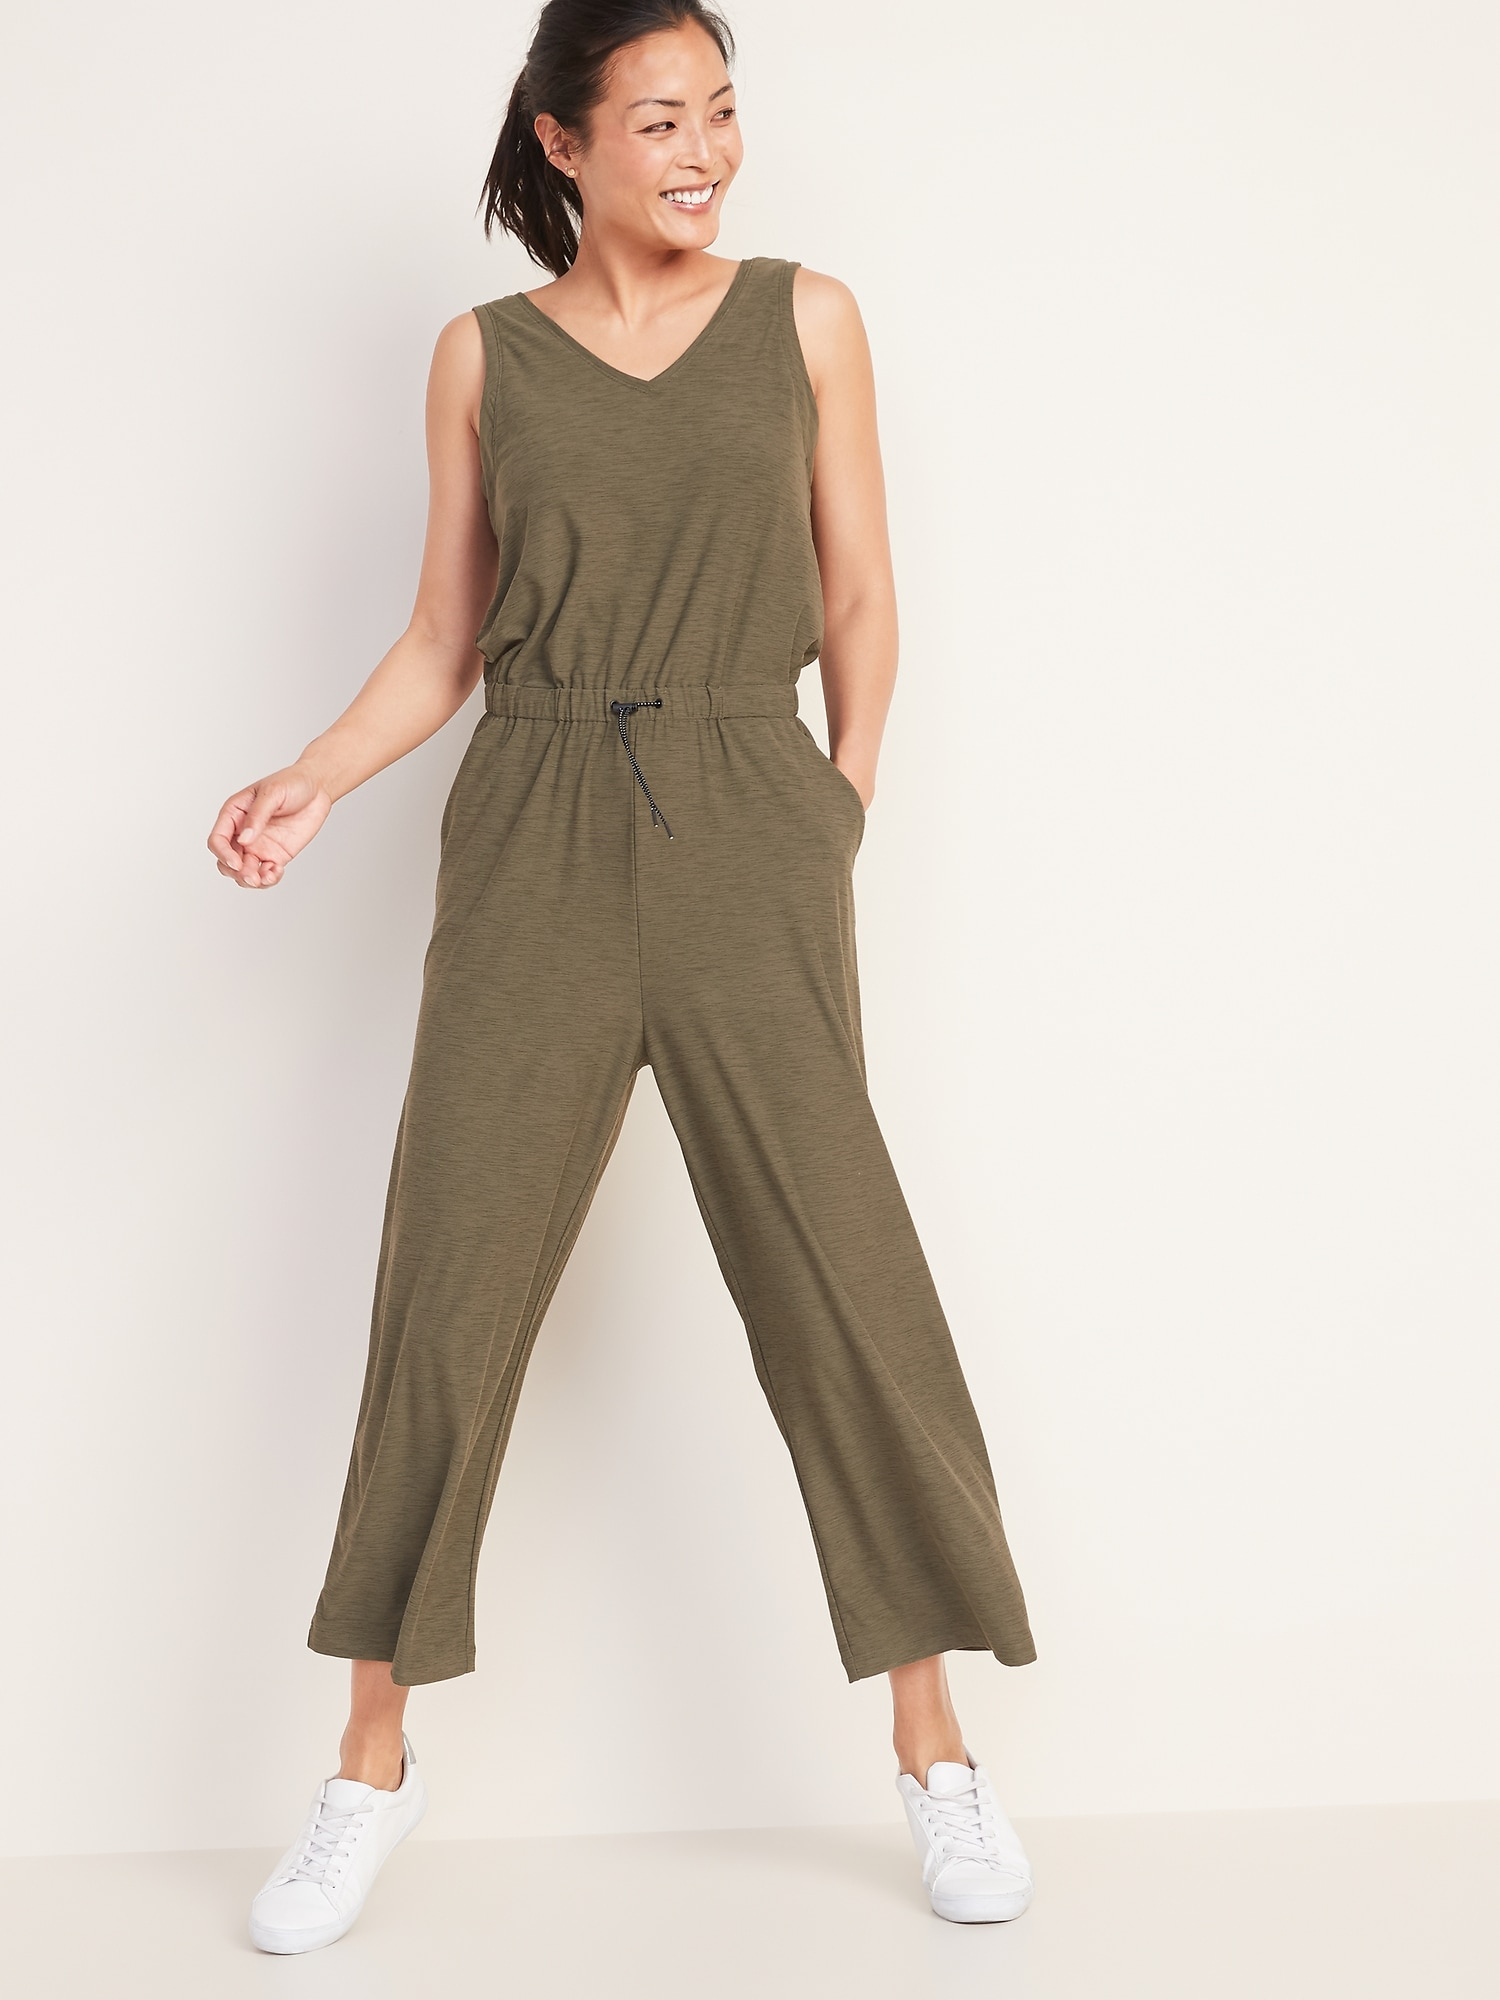 Breathe On Waist Defined Sleeveless Jumpsuit For Women by Old Navy